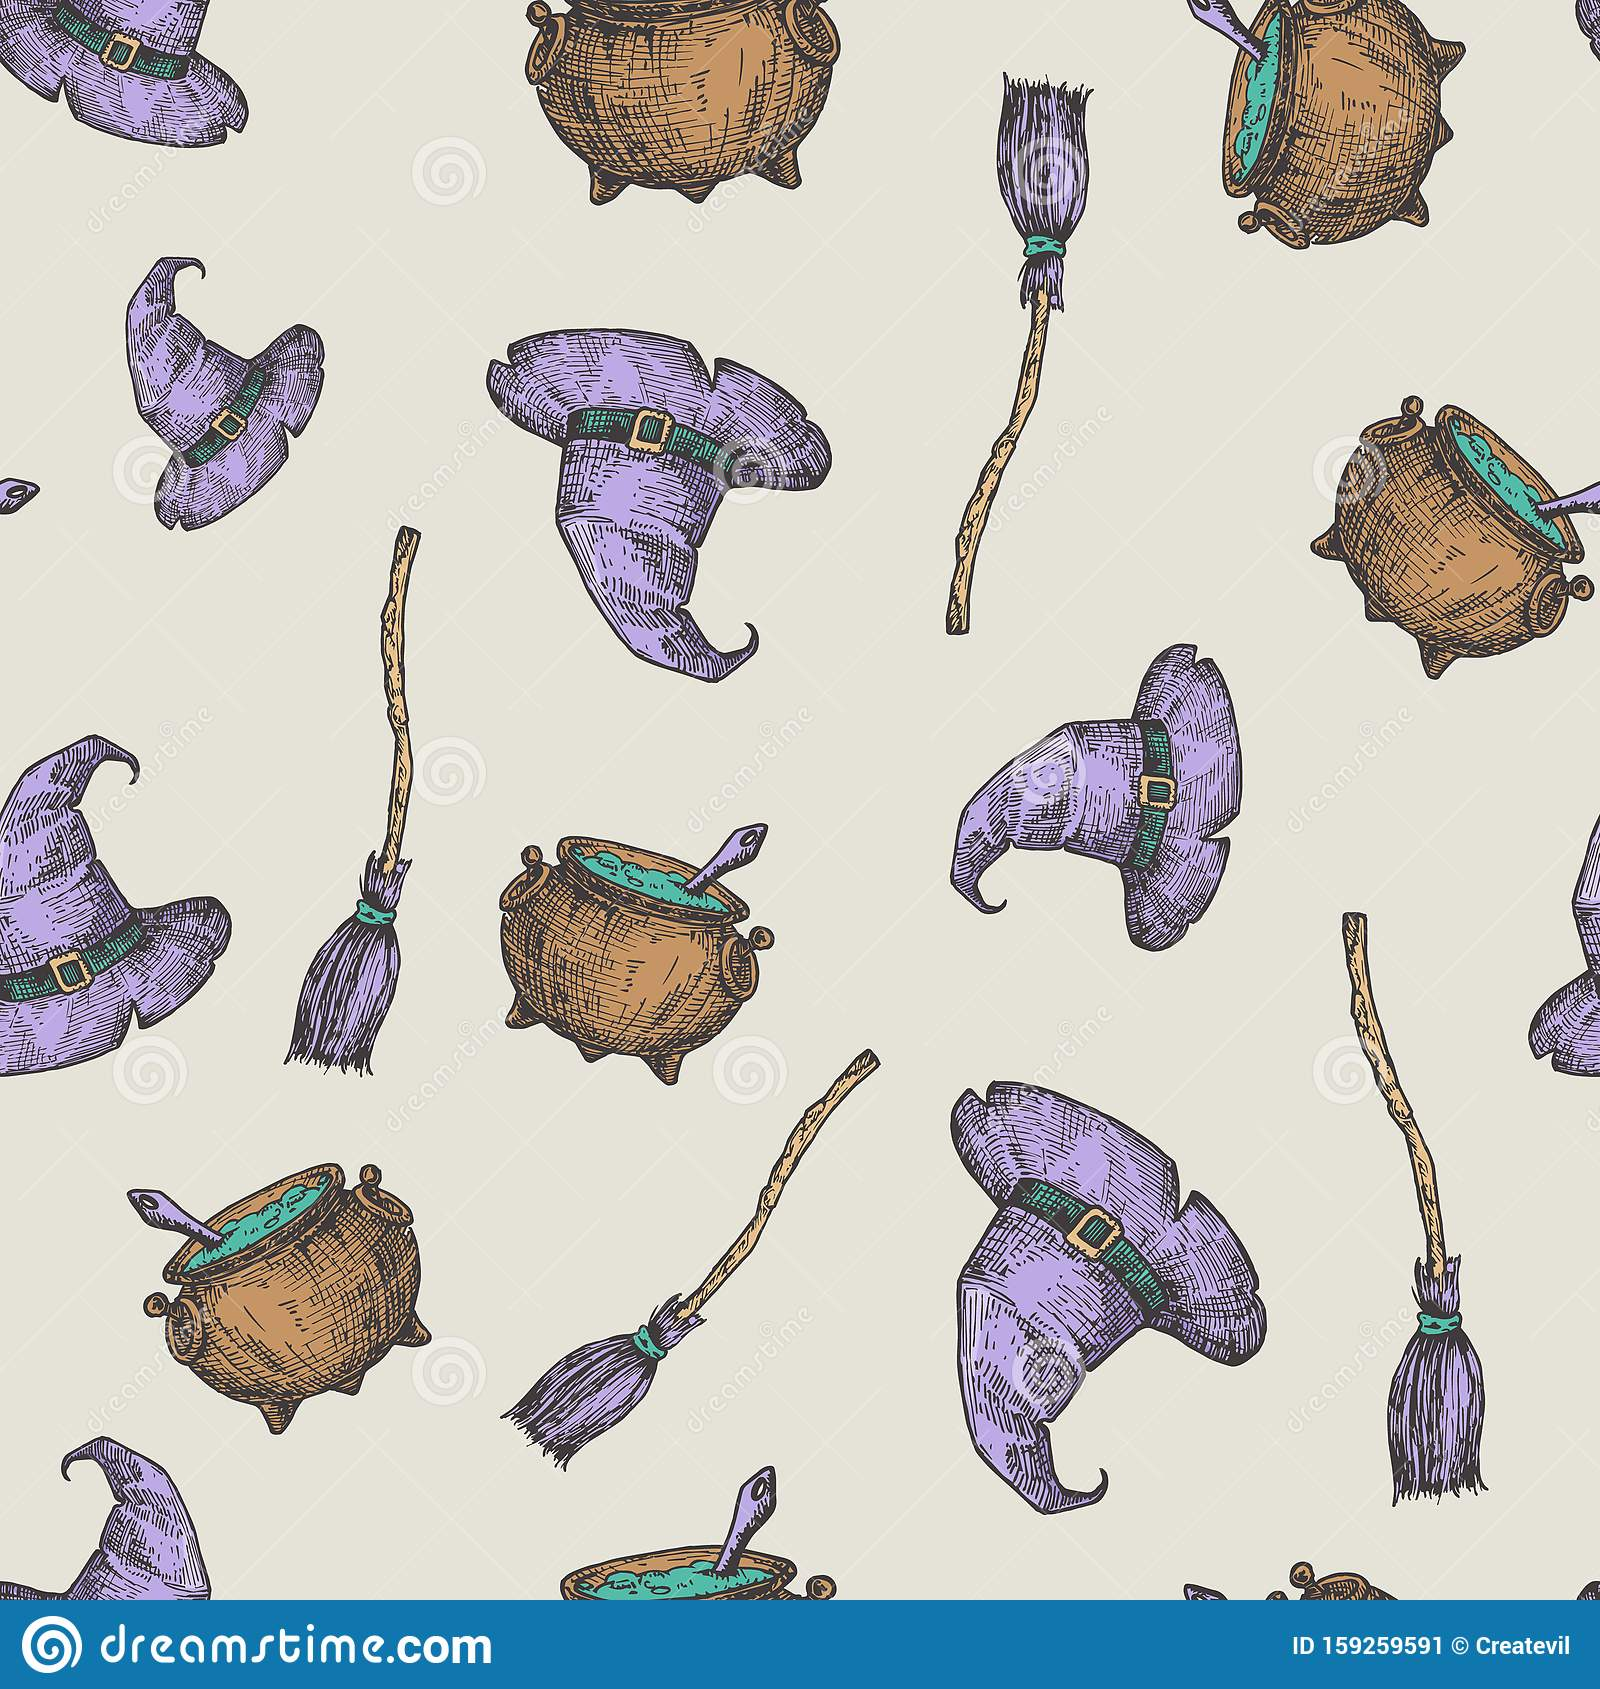 Hand Drawn Witch Hat, Broom and Cauldron Vector Seamless Background Pattern. Halloween Celebration Greeting Sketches